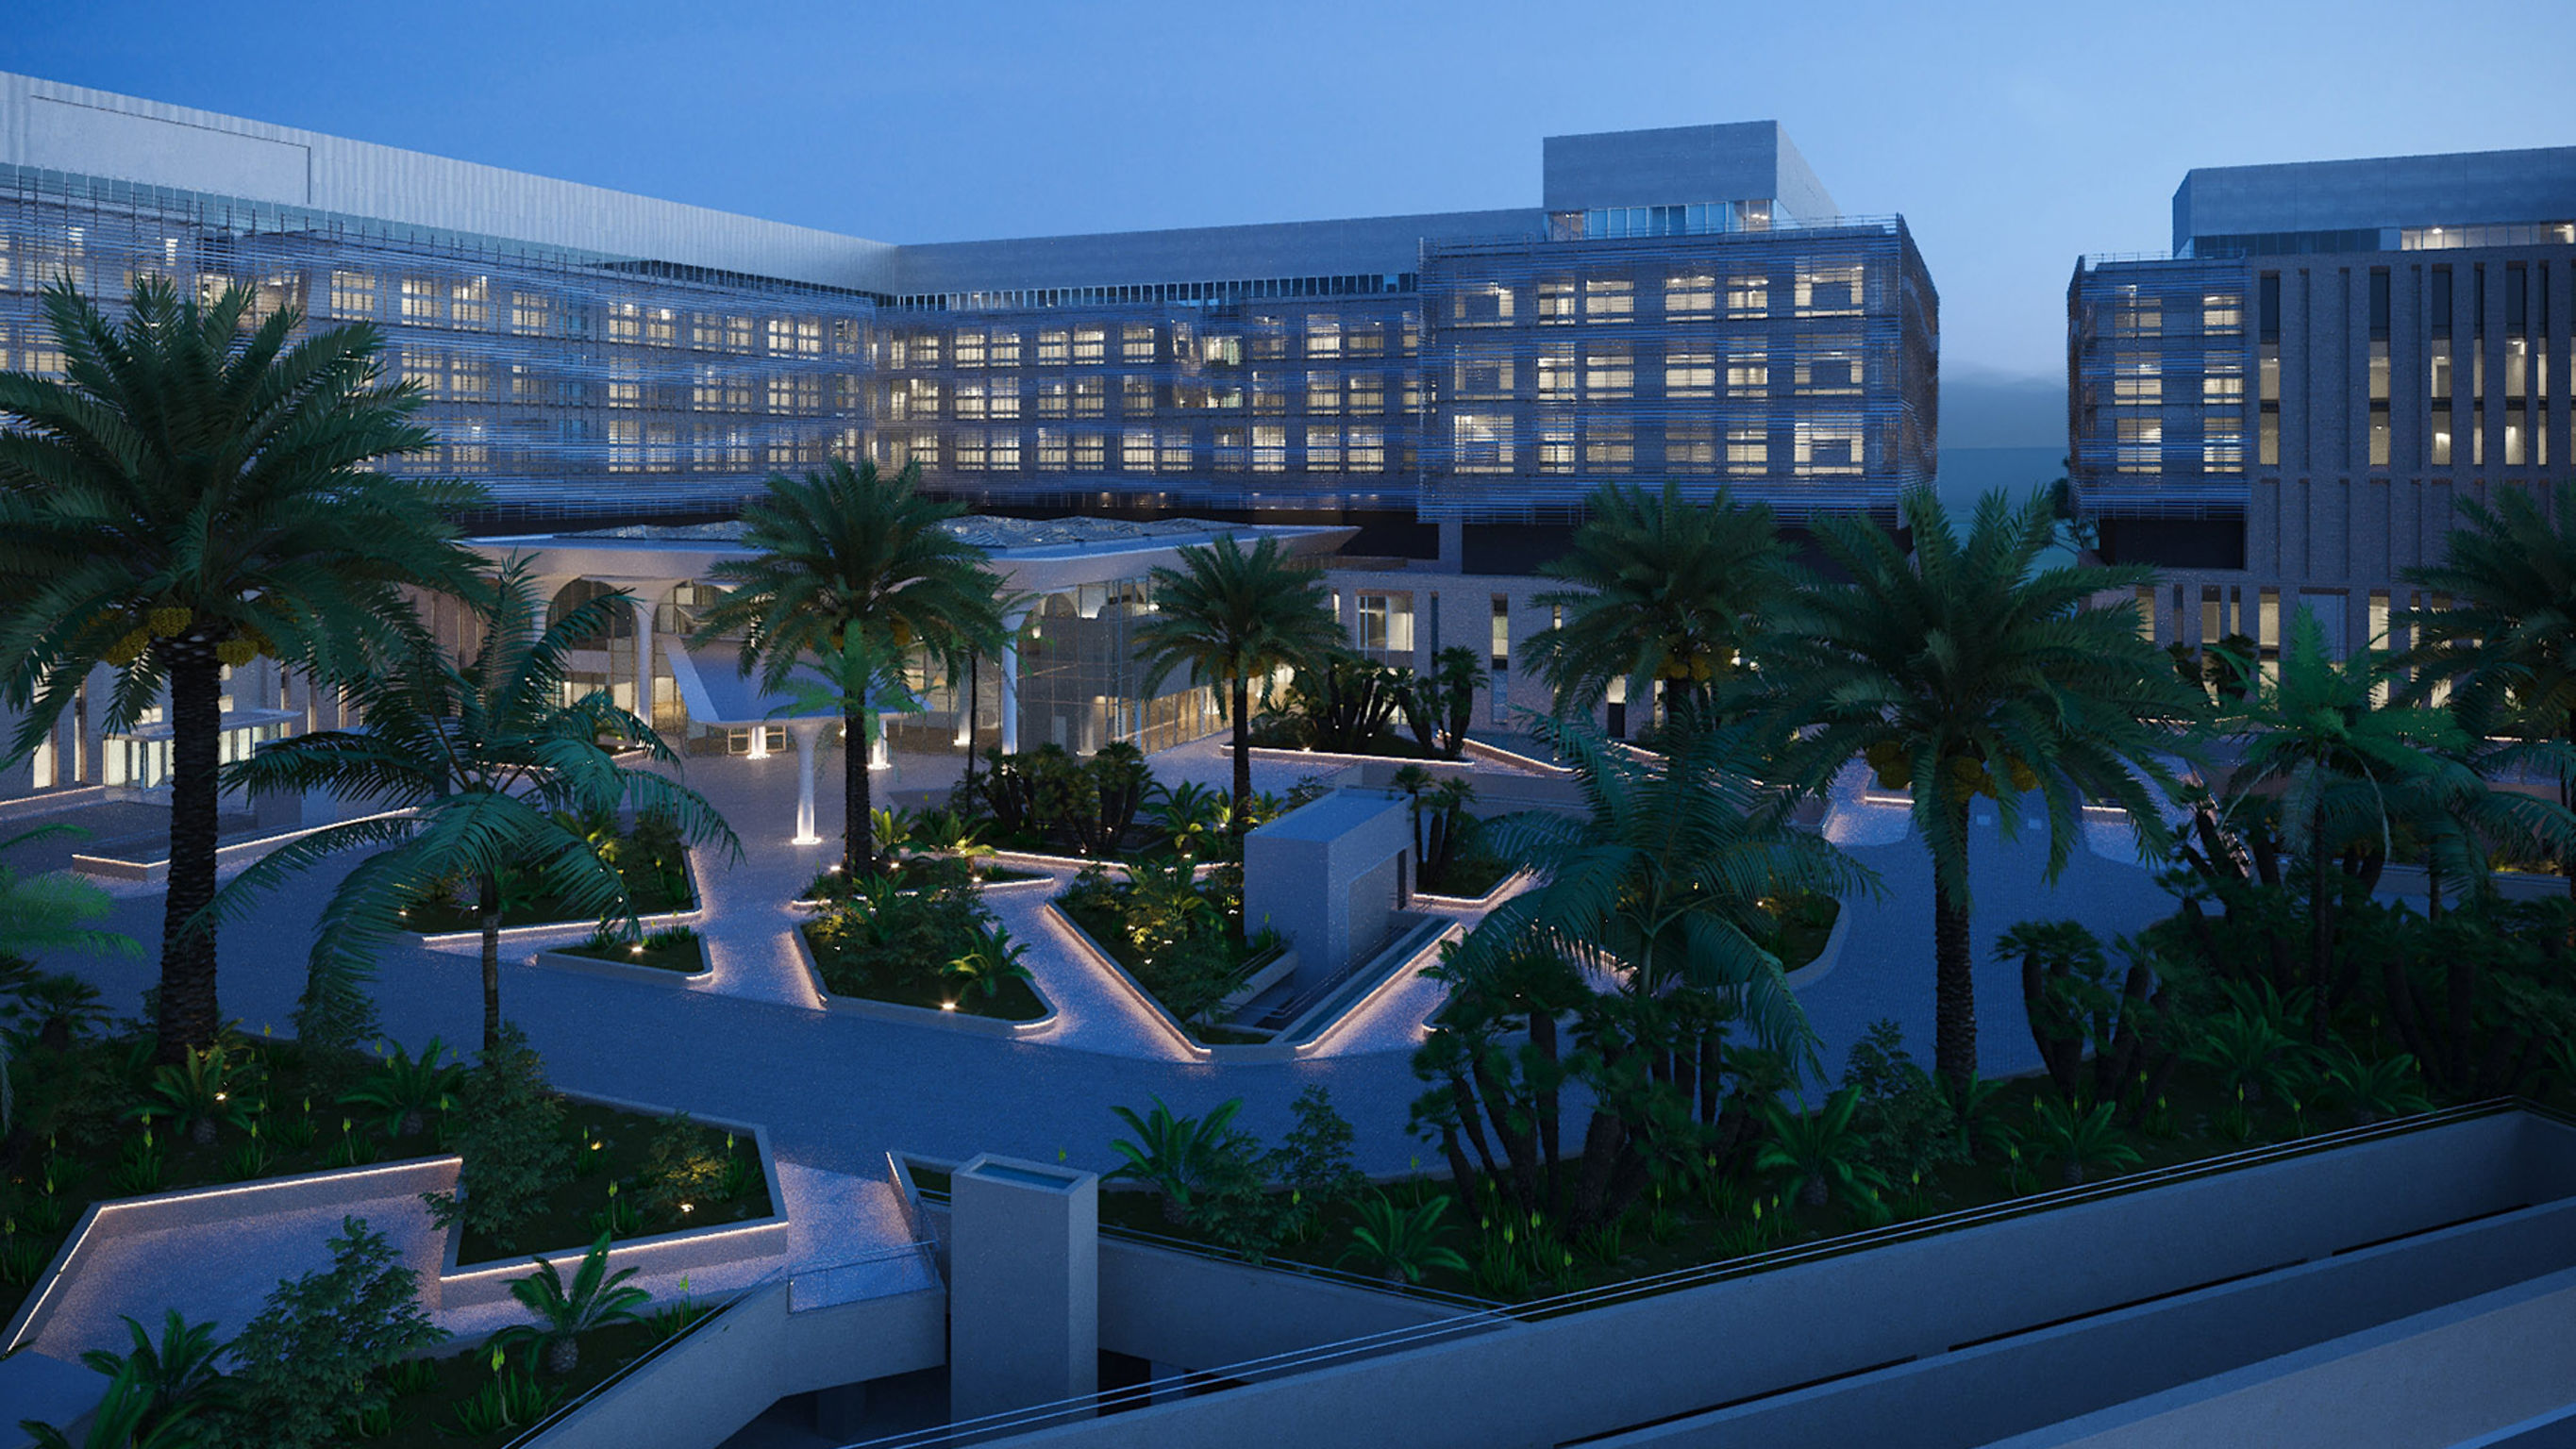 People Centric Community Hospital | iF WORLD DESIGN GUIDE